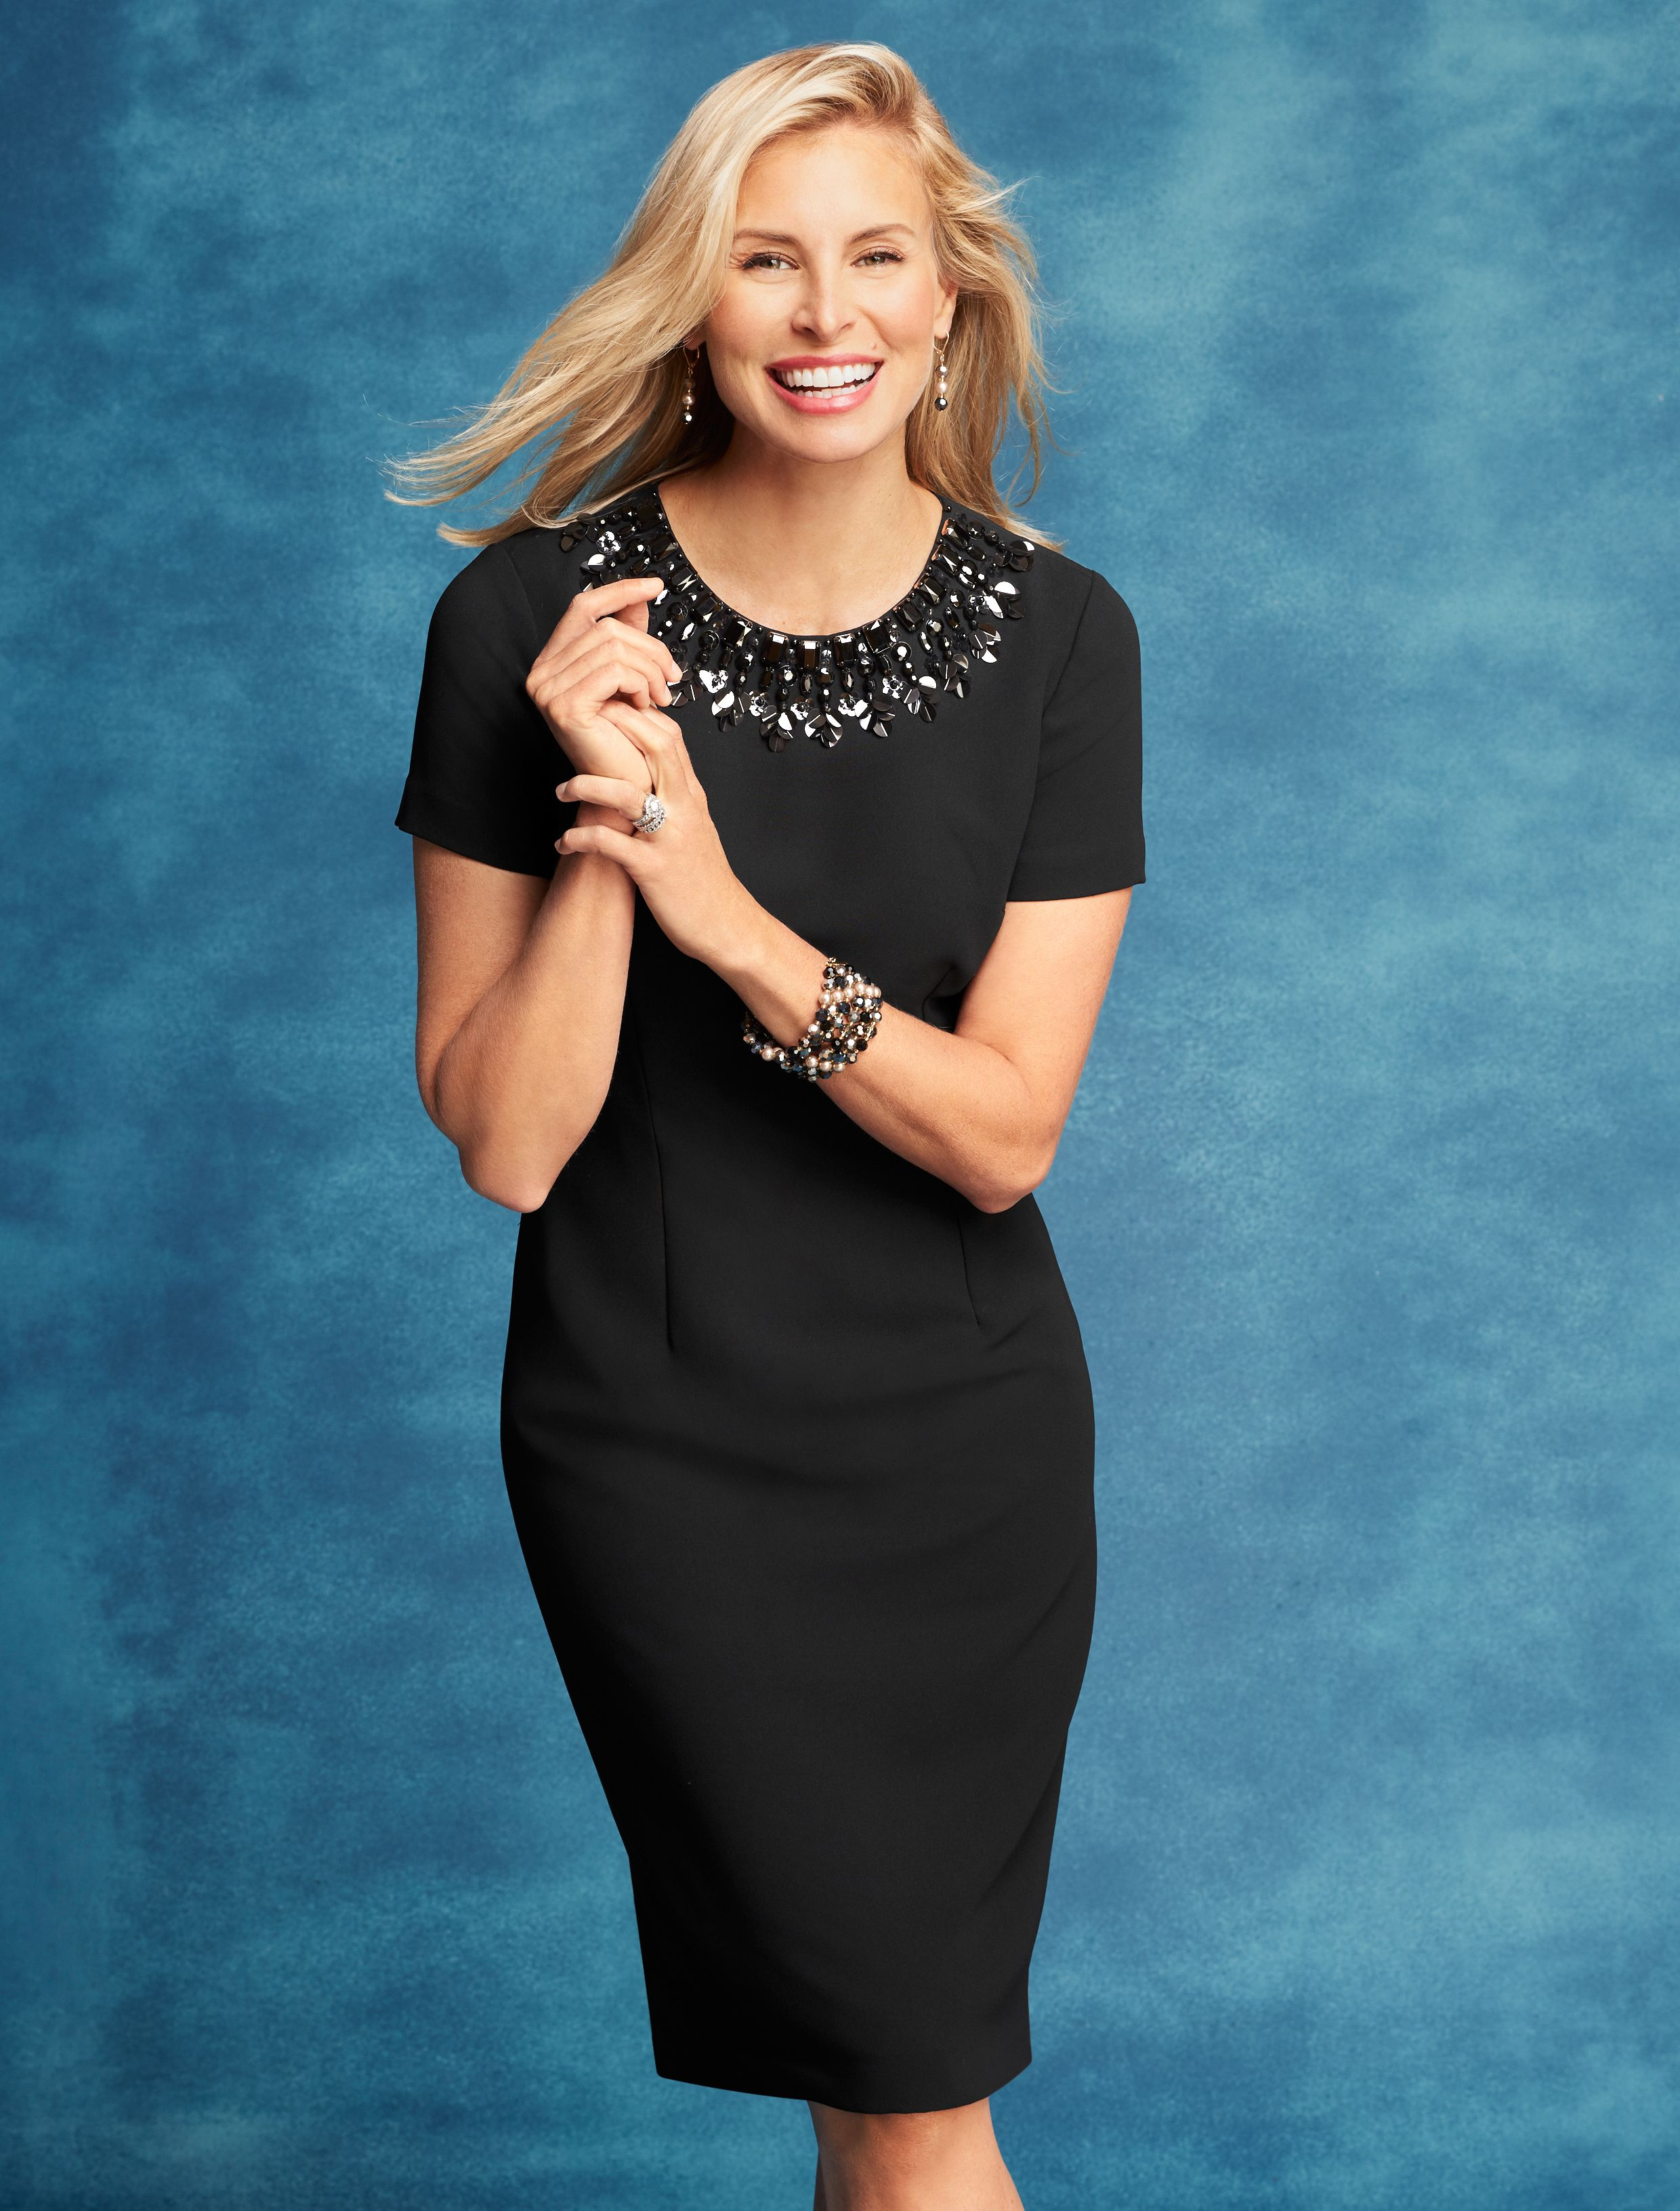 Simple Stylish And Tailored To Flatter This Crepe Sheath Dress Goes From Work To Dinner With Ease A Jewel D Night Out Outfit Classy Dresses Talbots Outfits [ 3263 x 2480 Pixel ]